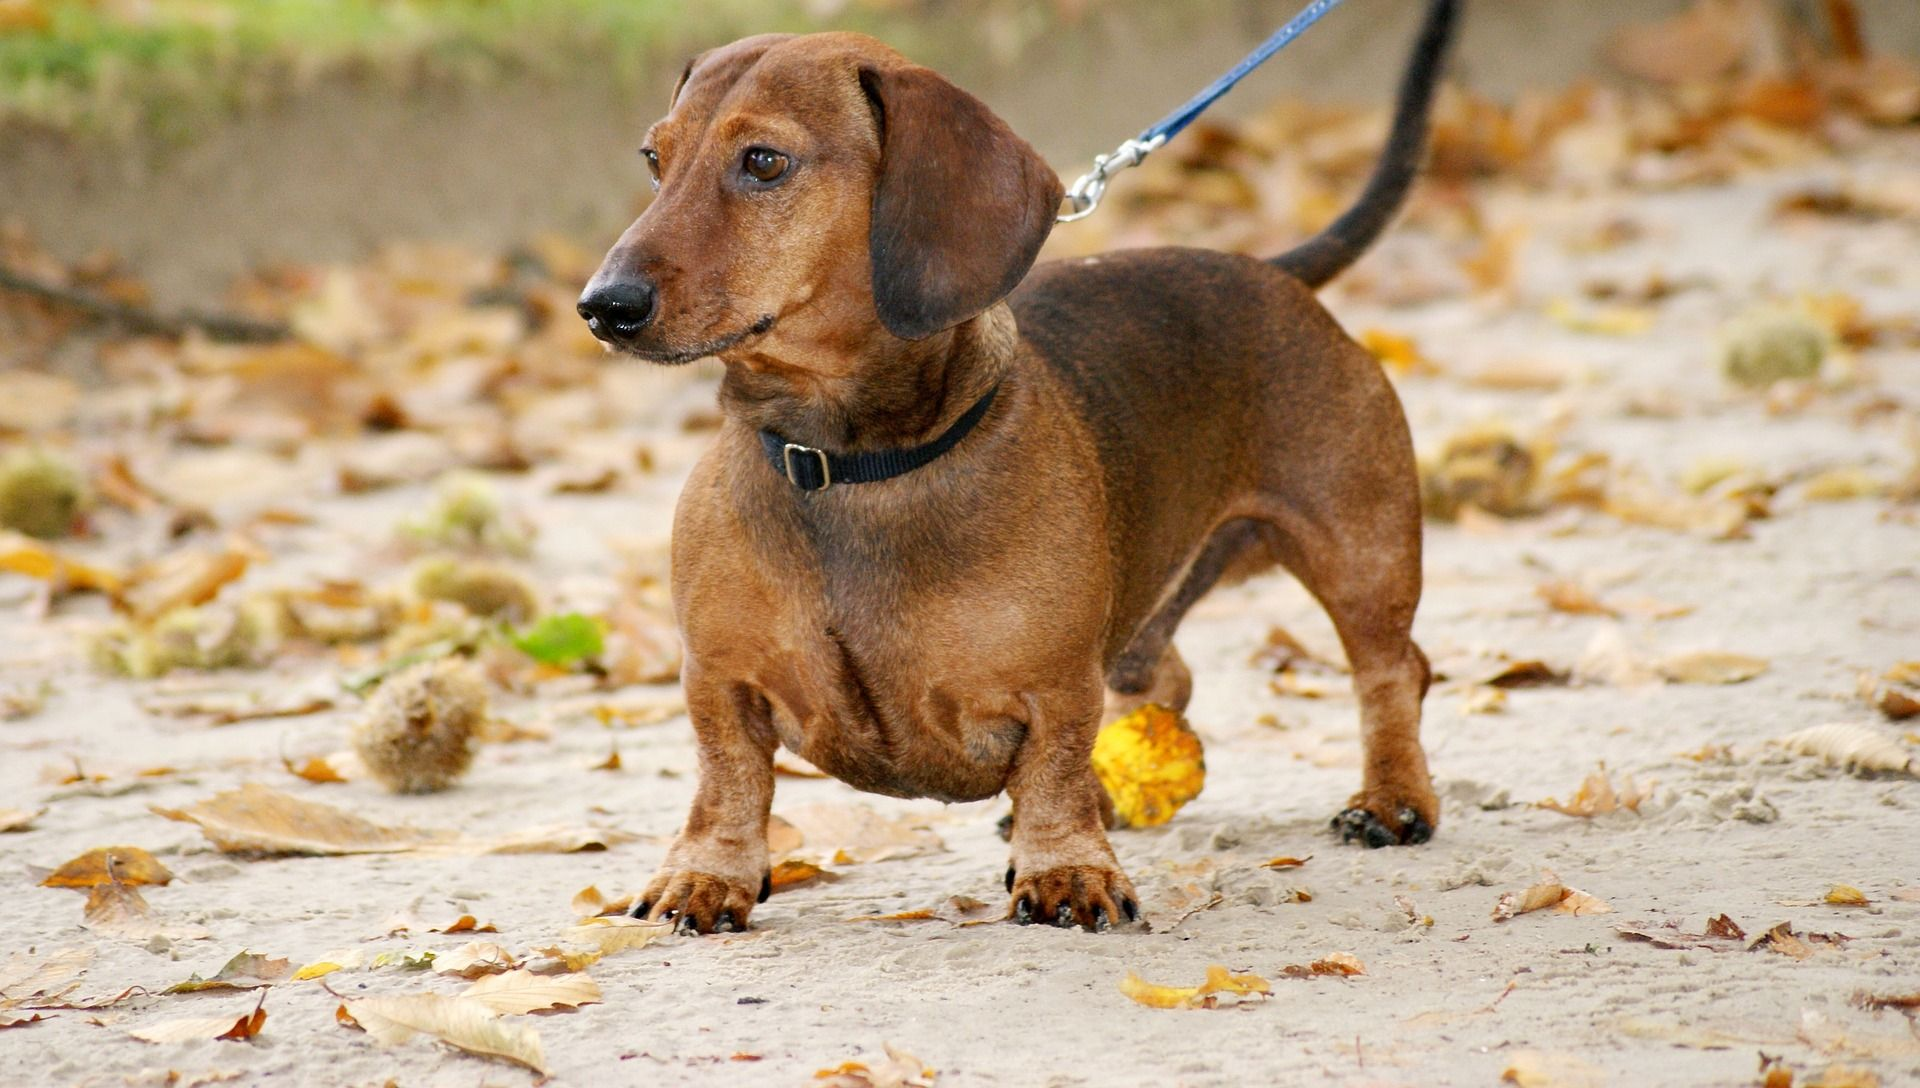 6 Dangerous Foods For Dog That Should Be Avoided Dachshunds